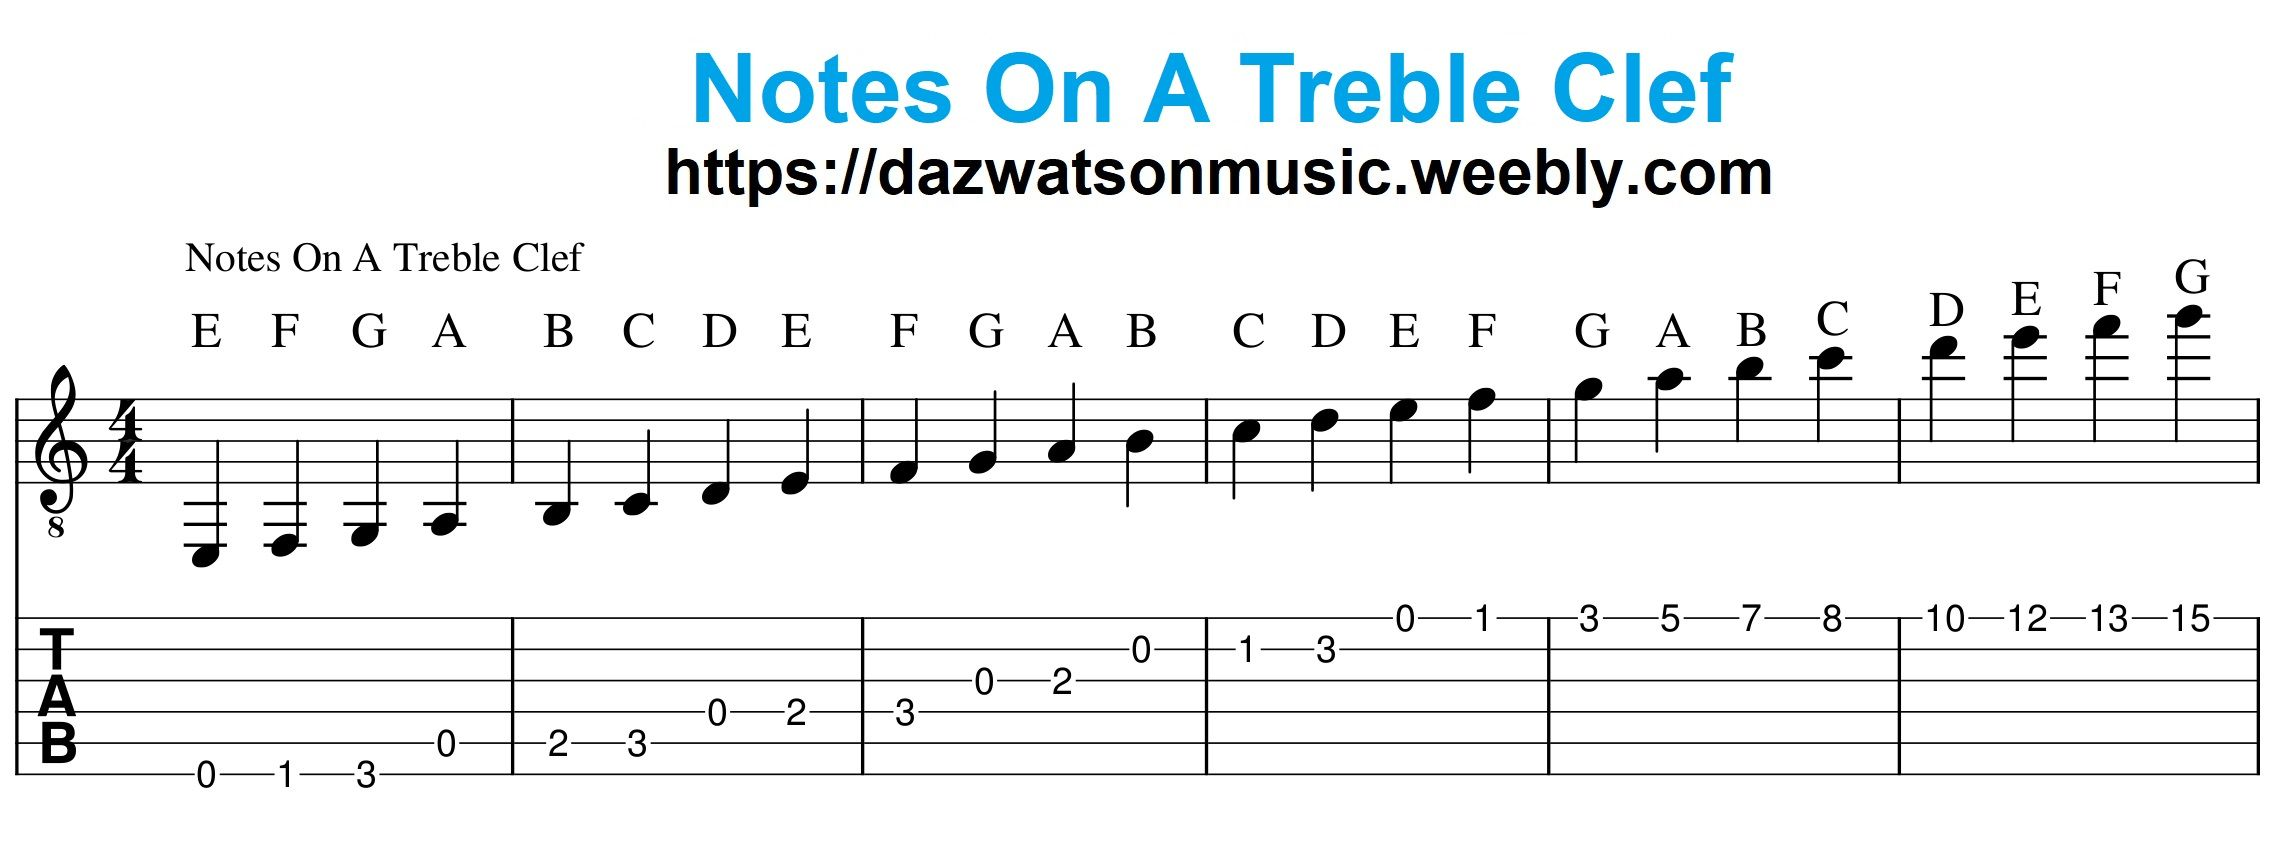 Notes On A Treble Clef Guitar For Beginners Guitar Lessons Guitar Lessons For Beginners Reading music notation for guitar